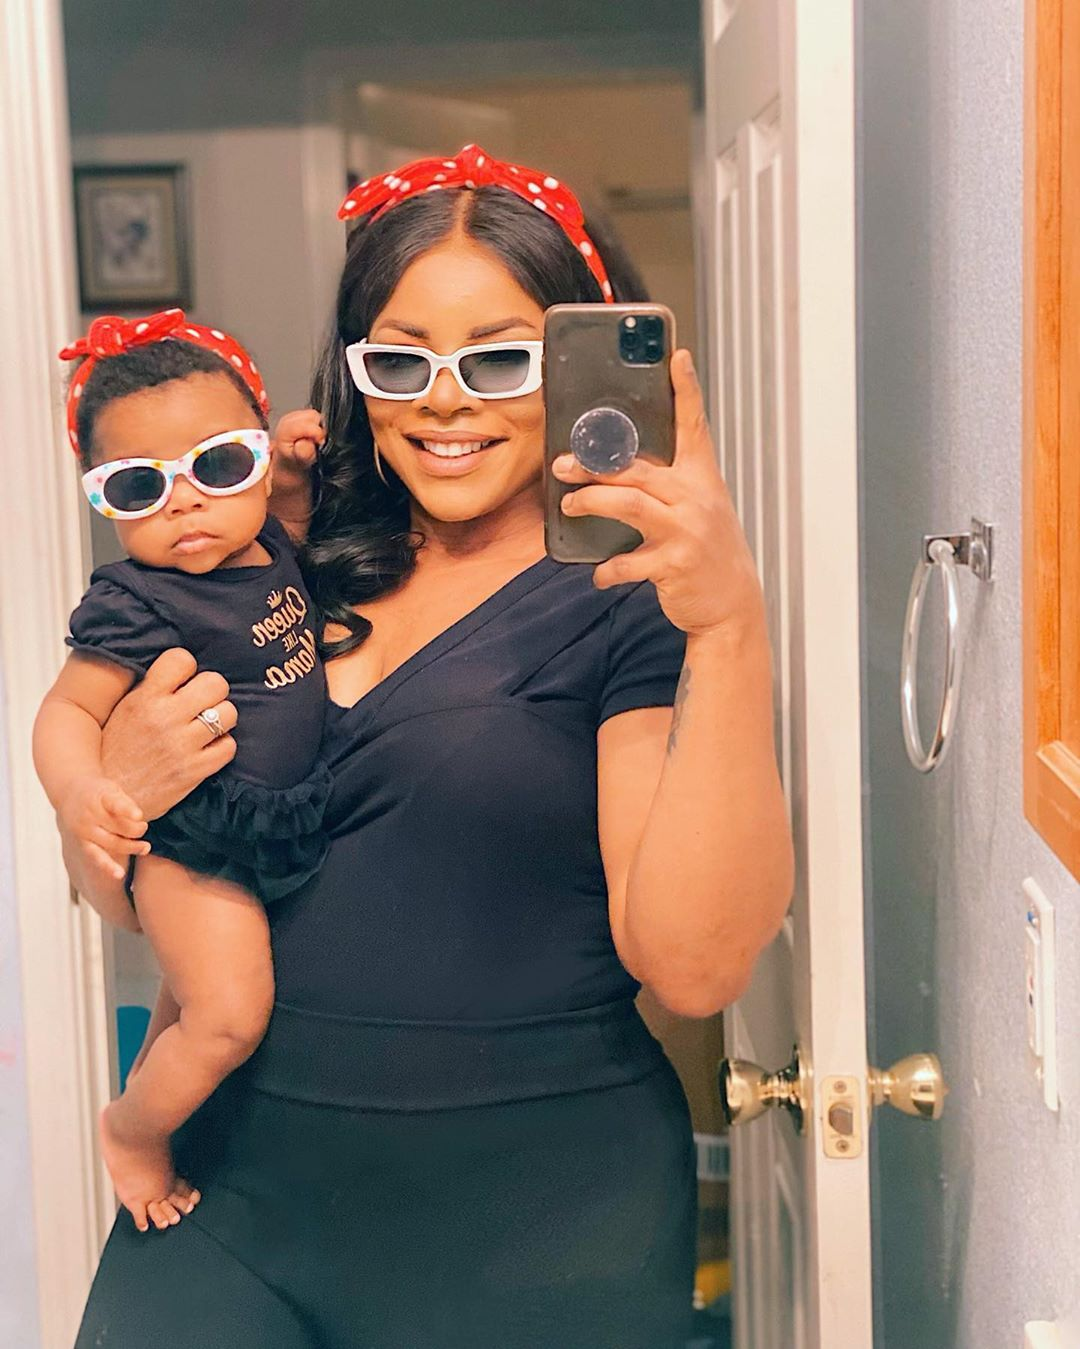 Laura Ikeji's 4-months-old daughter becomes a millionaire influencer